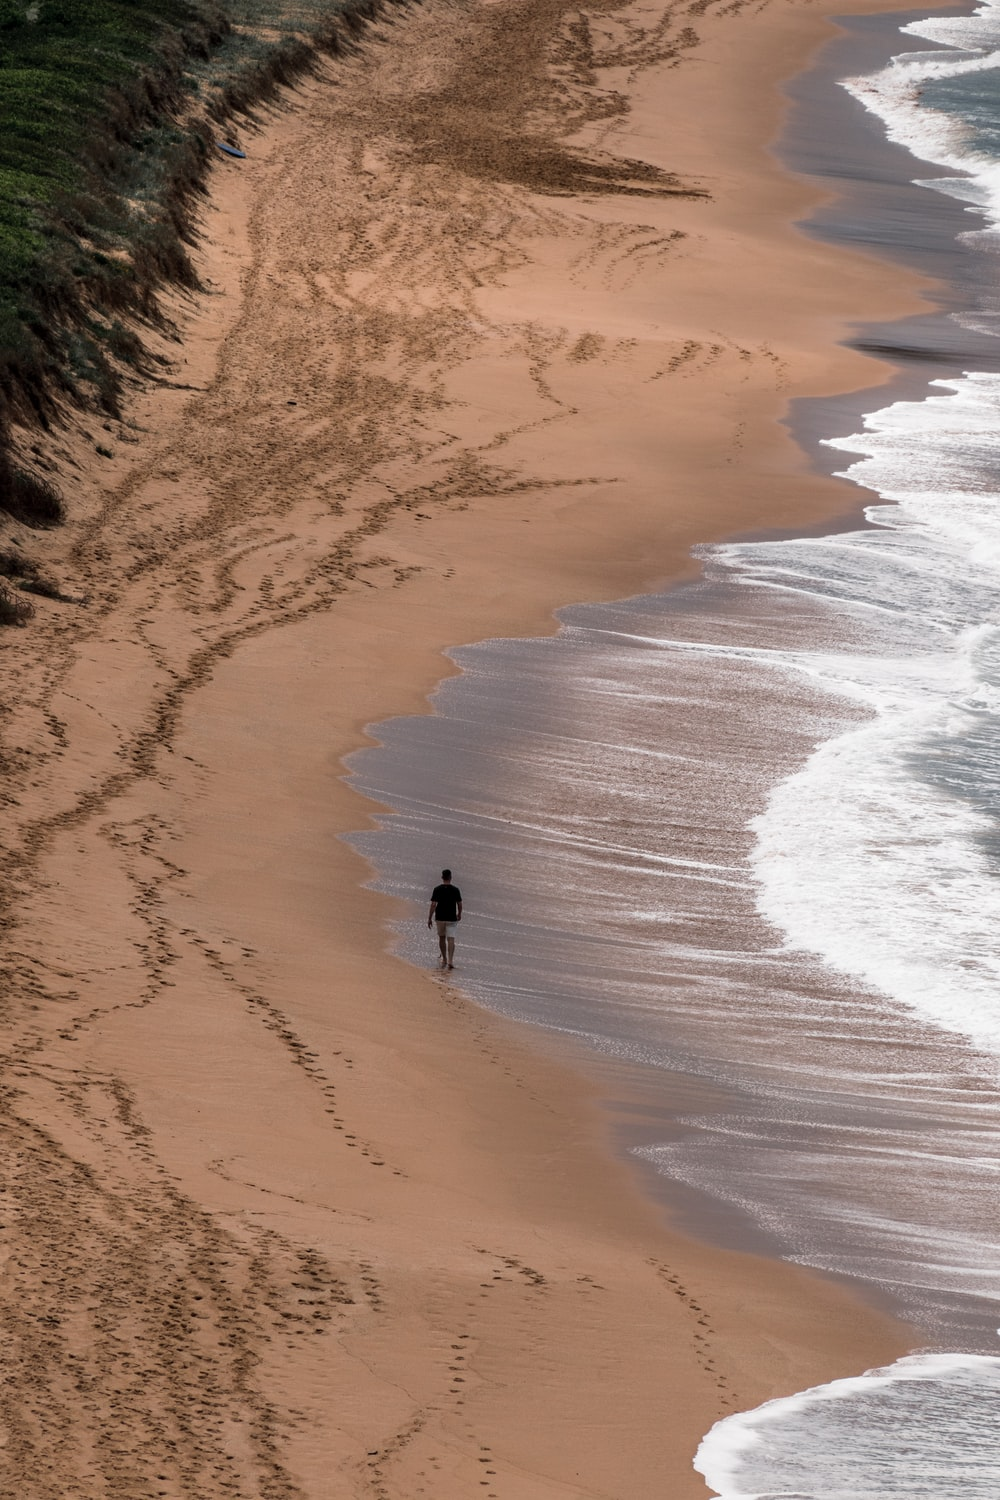 man in black shirt walking on beach during daytime